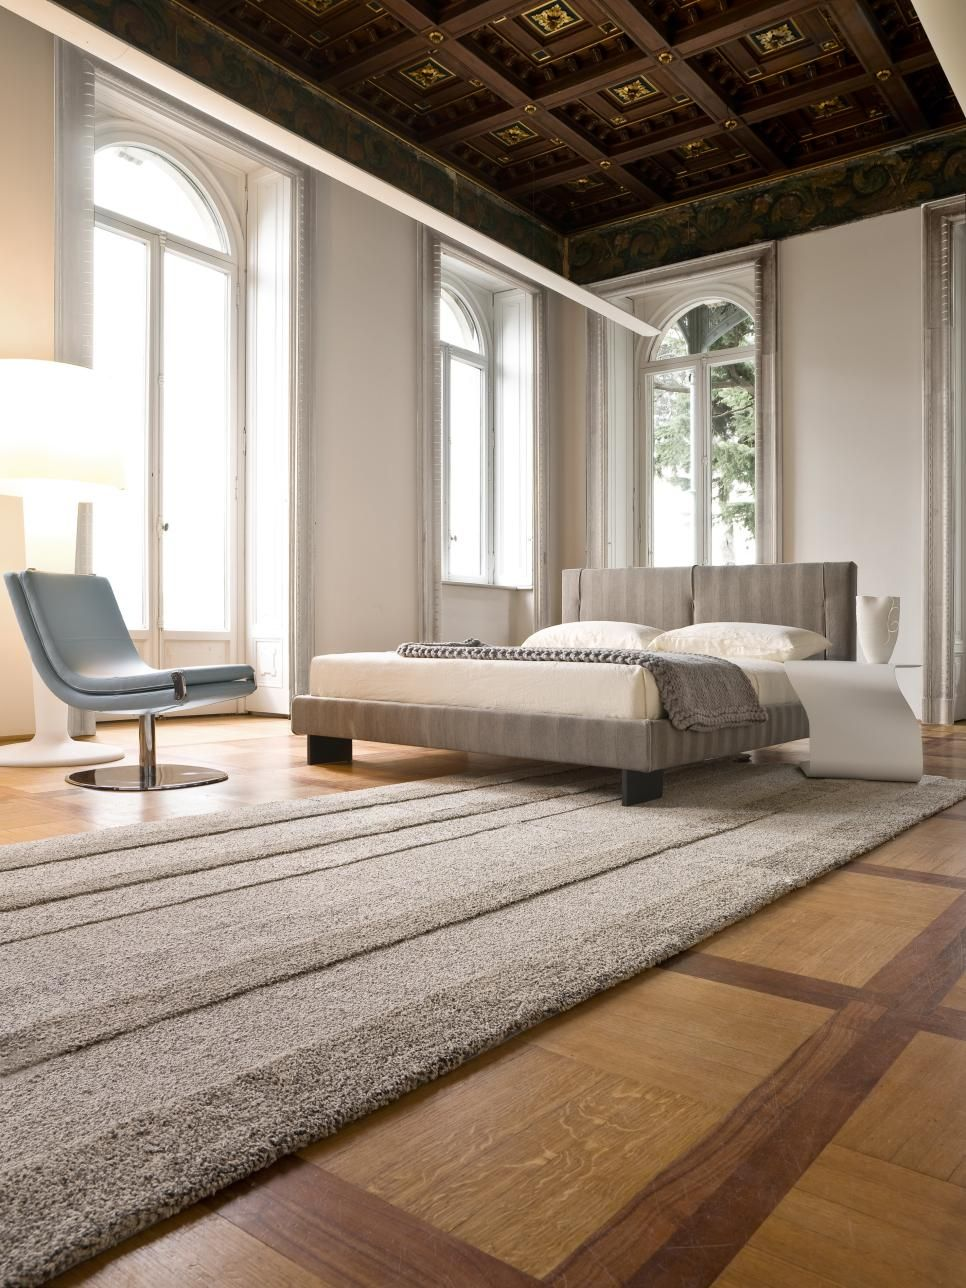 Ditch the Carpet: 12 Bedroom Flooring Options | Windows ...